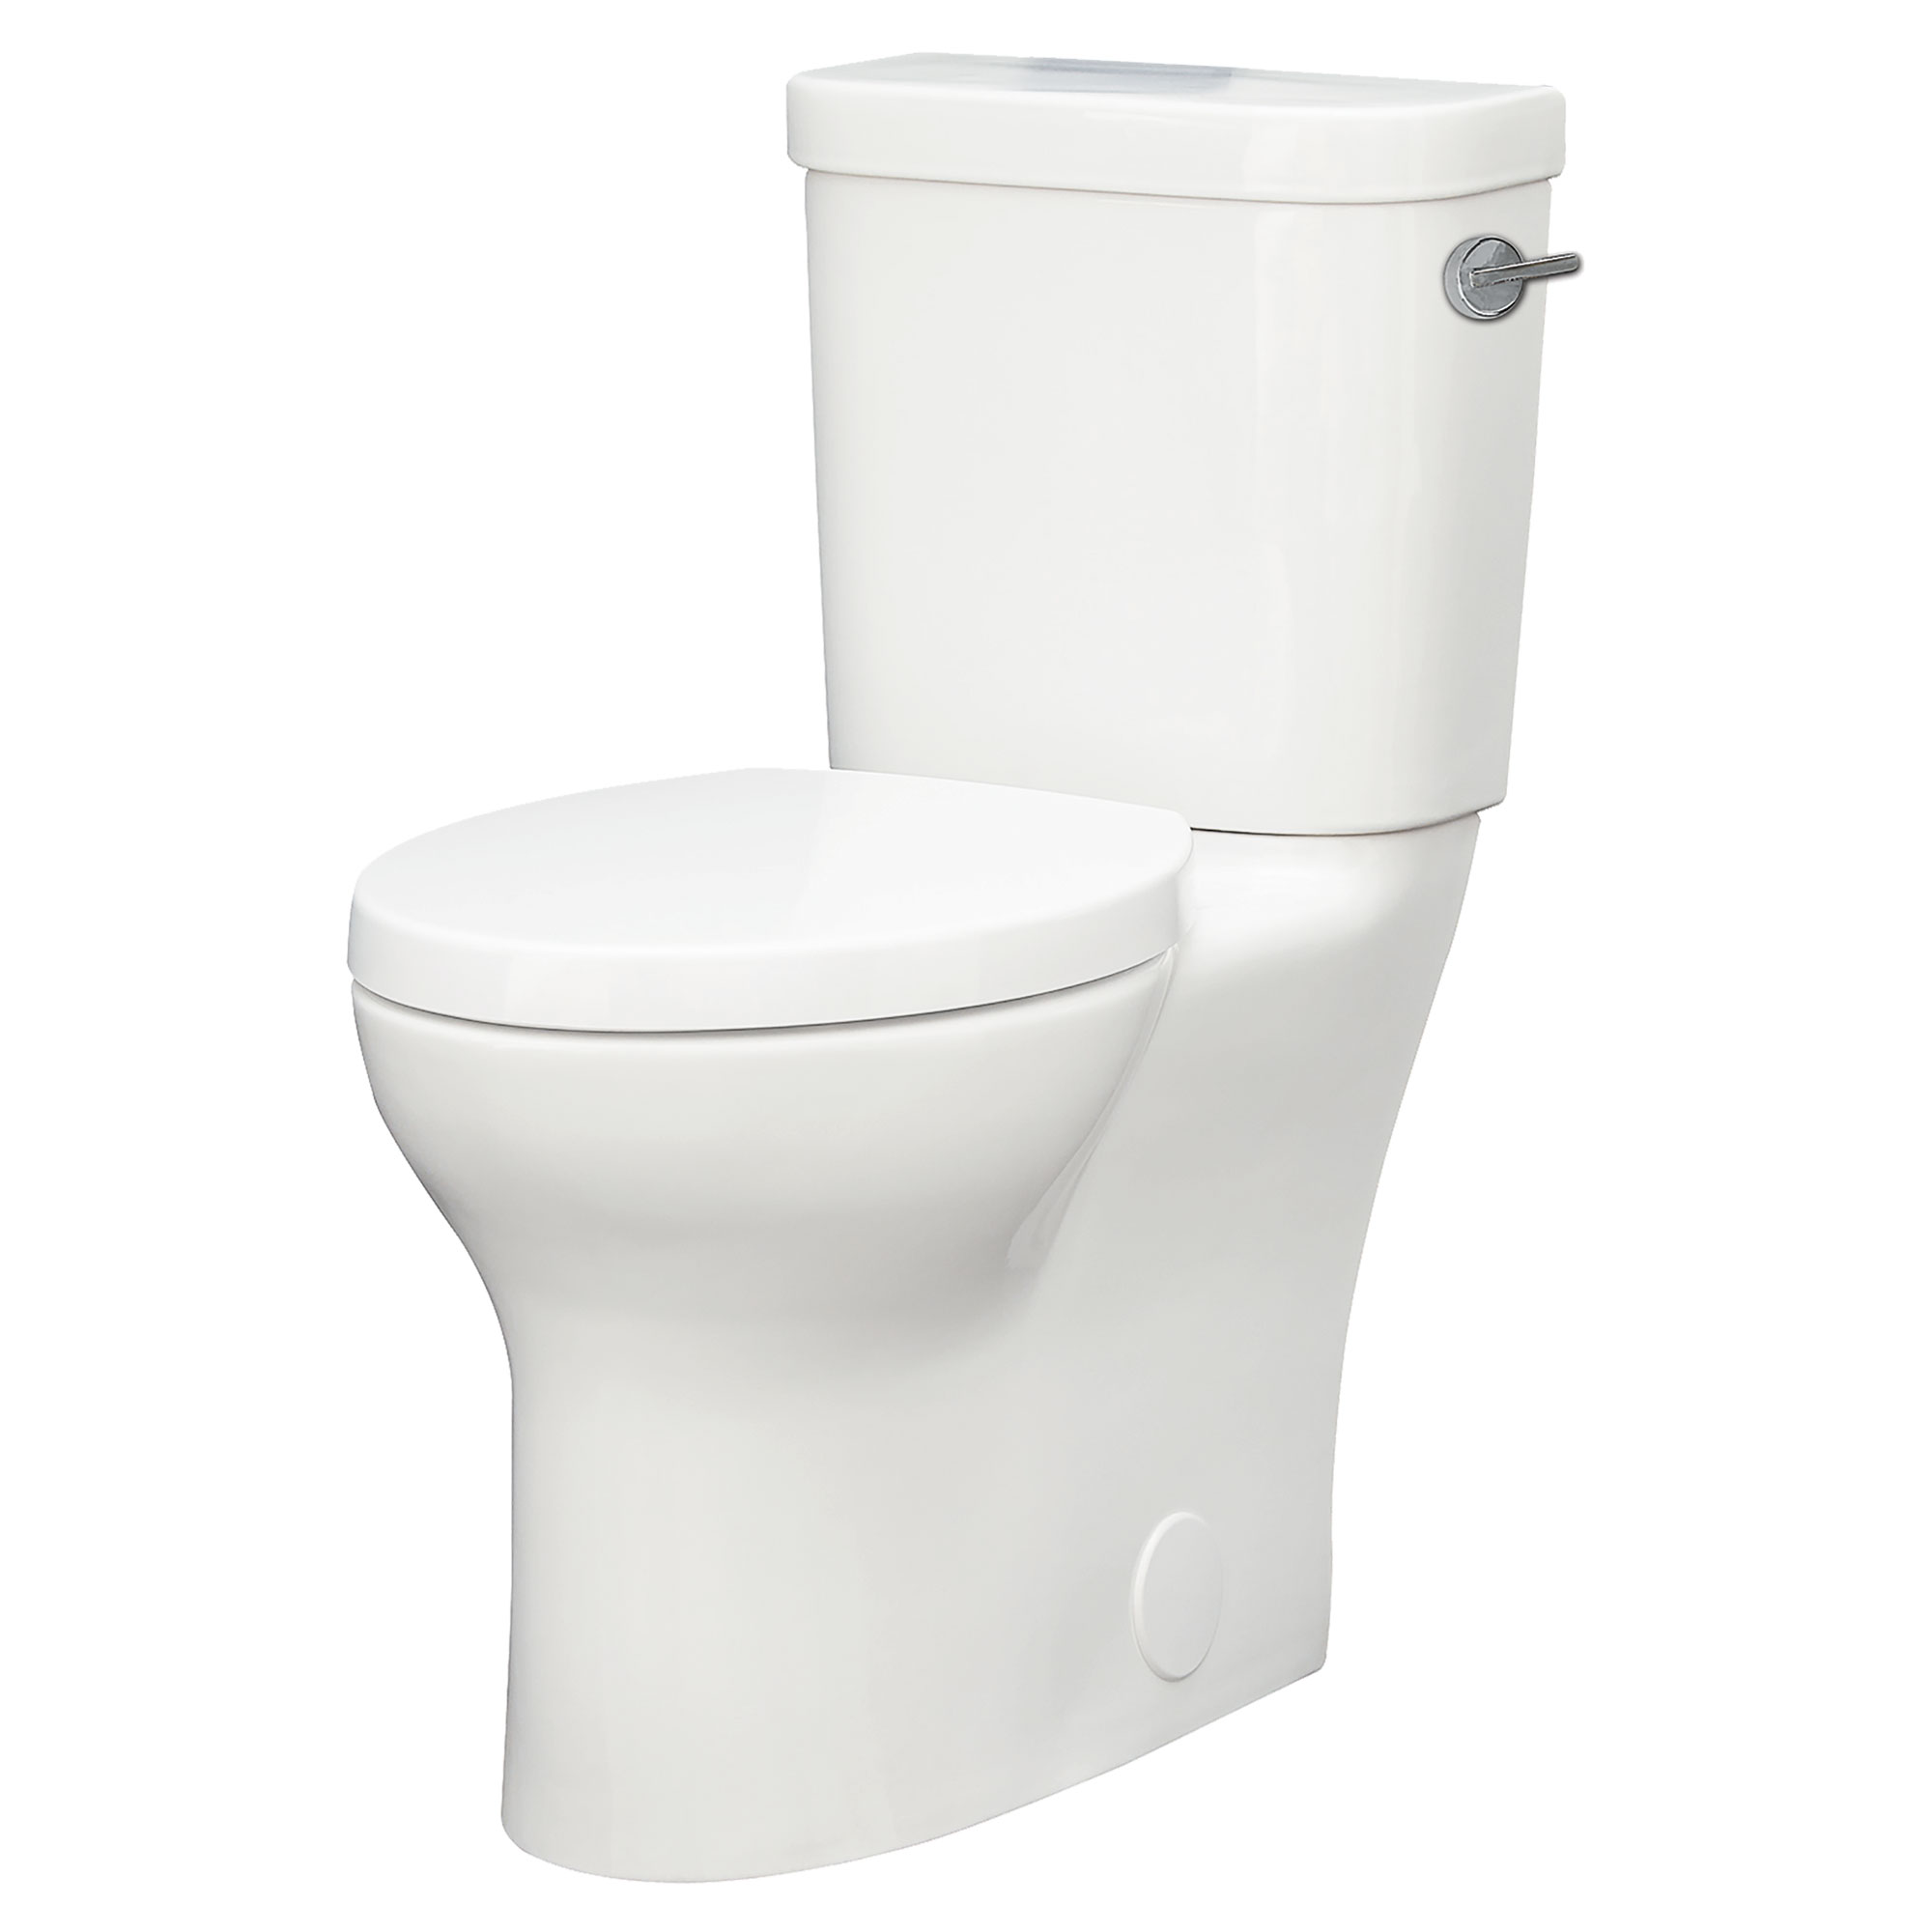 Wall Hung Toilet Seagram Standard